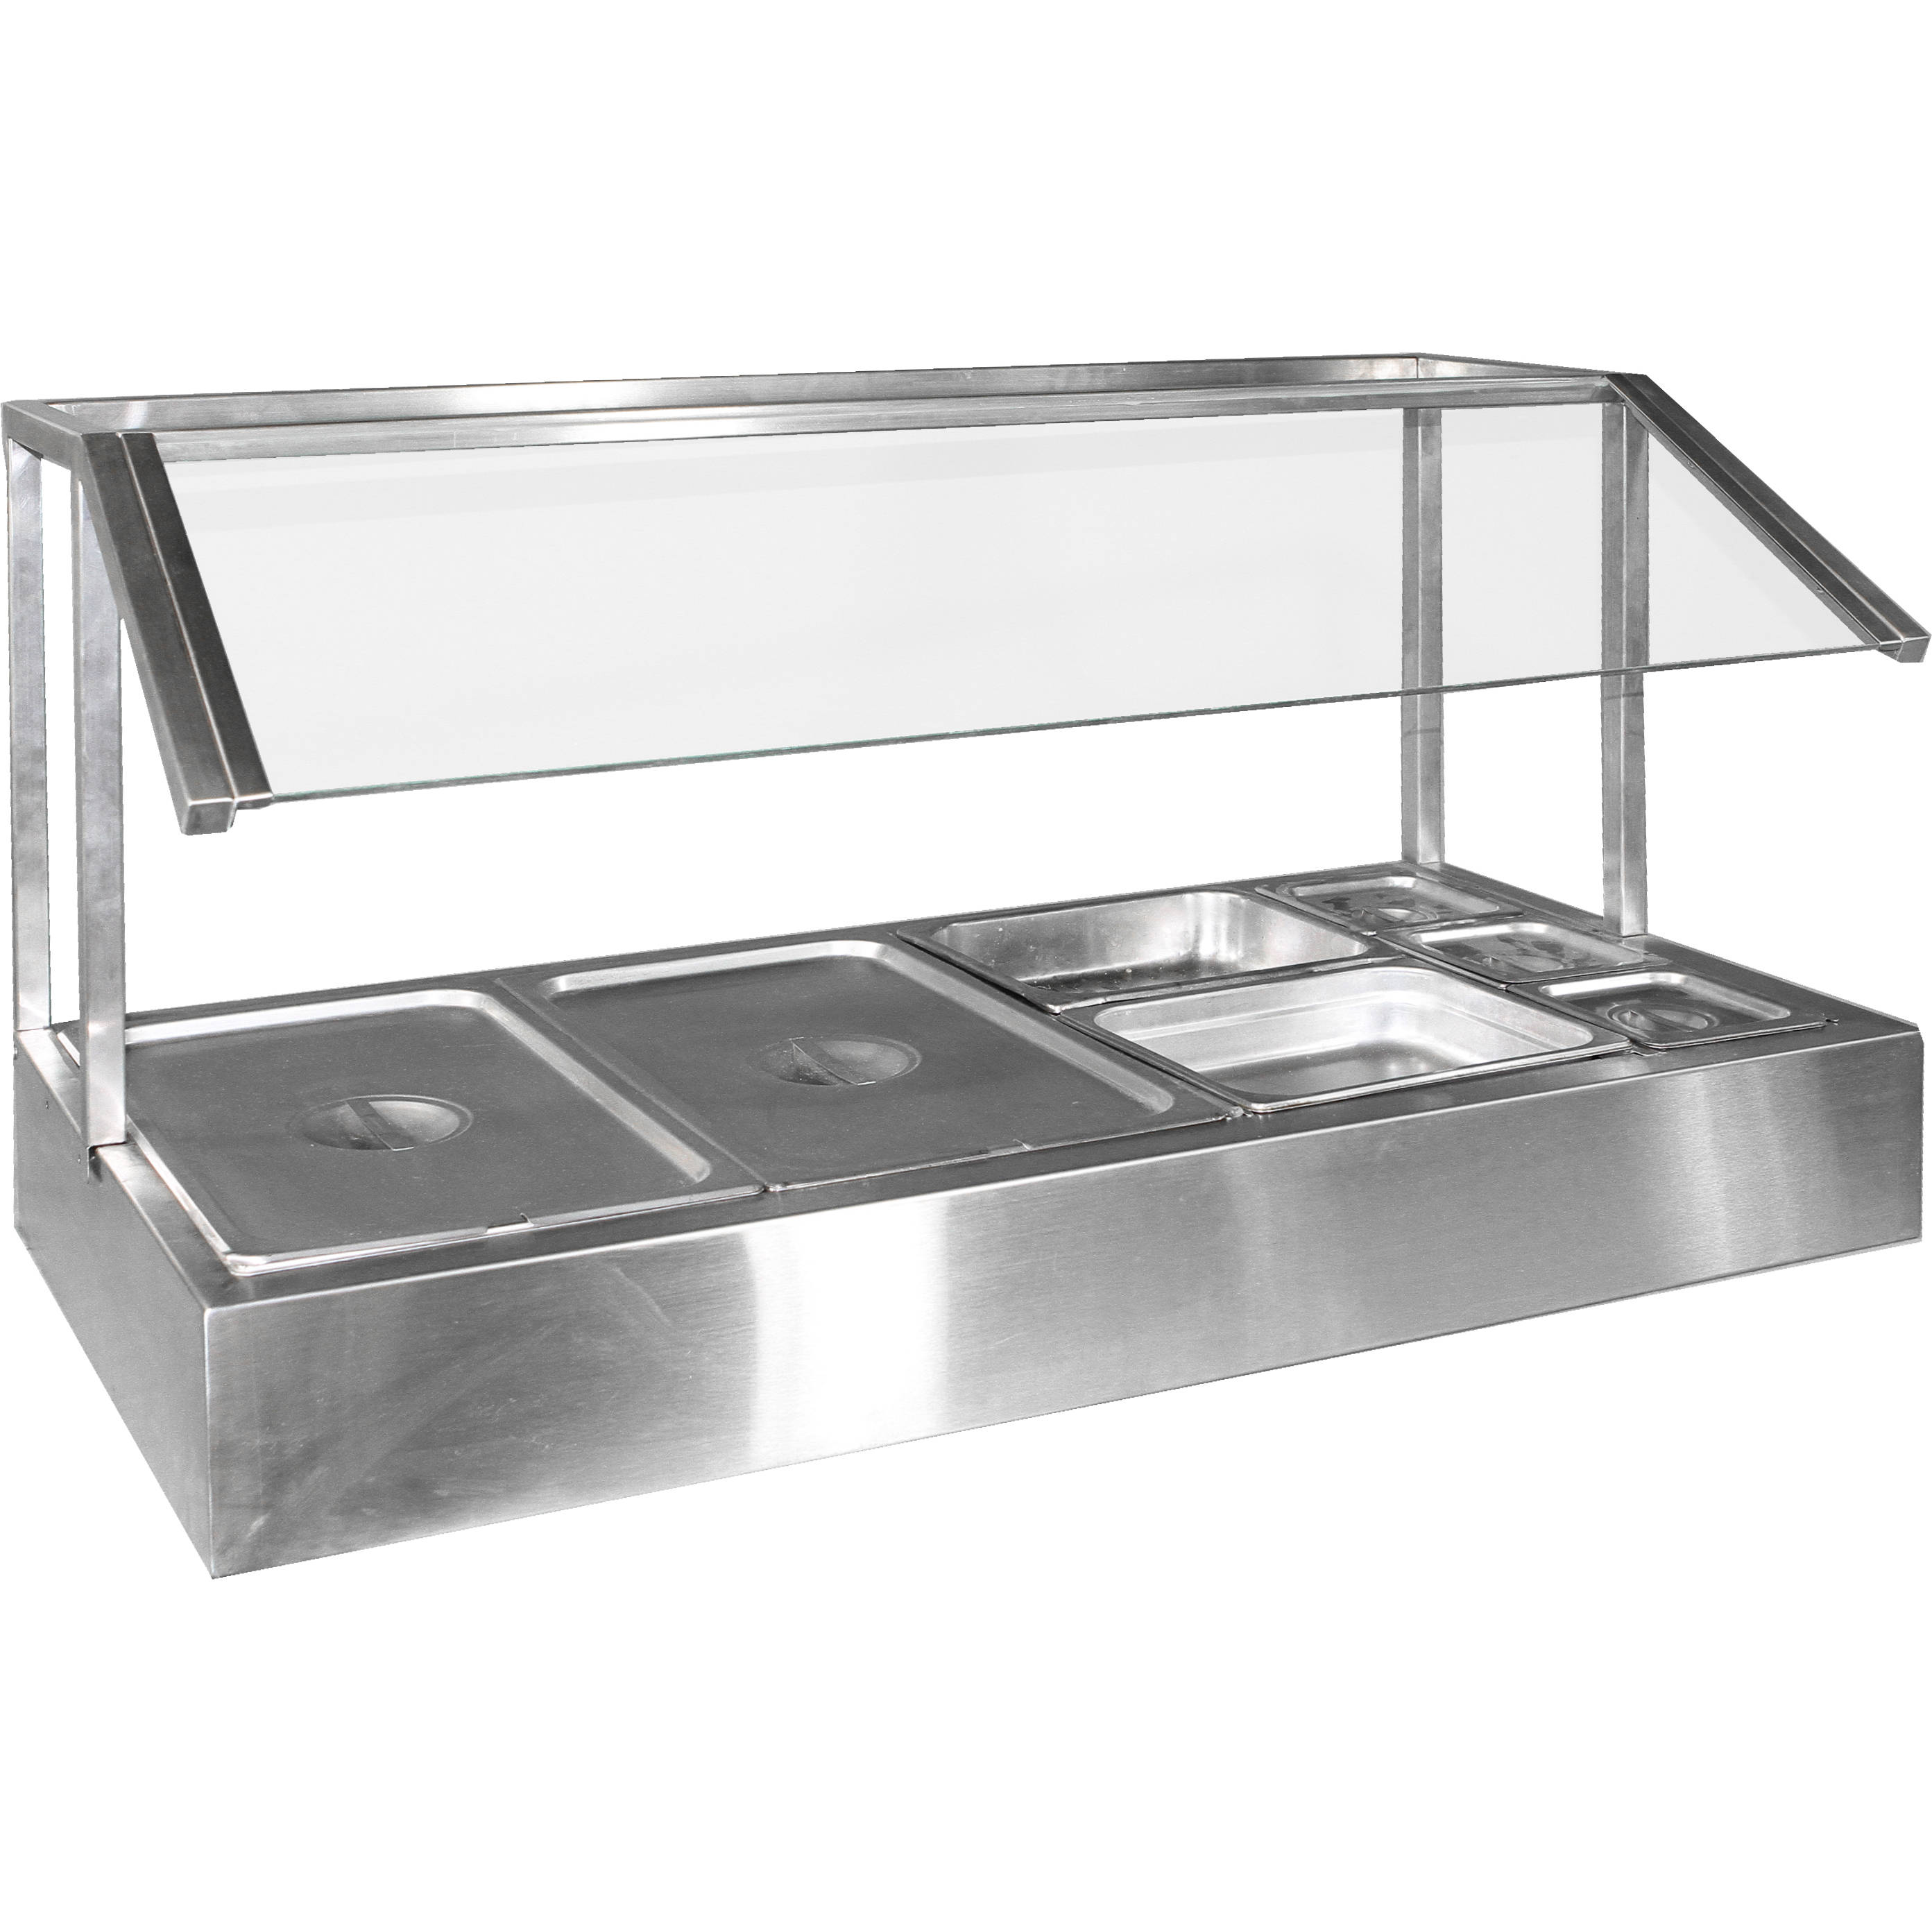 Salad bar w sneeze guard countertop air designs - Sneeze guard for steam table ...